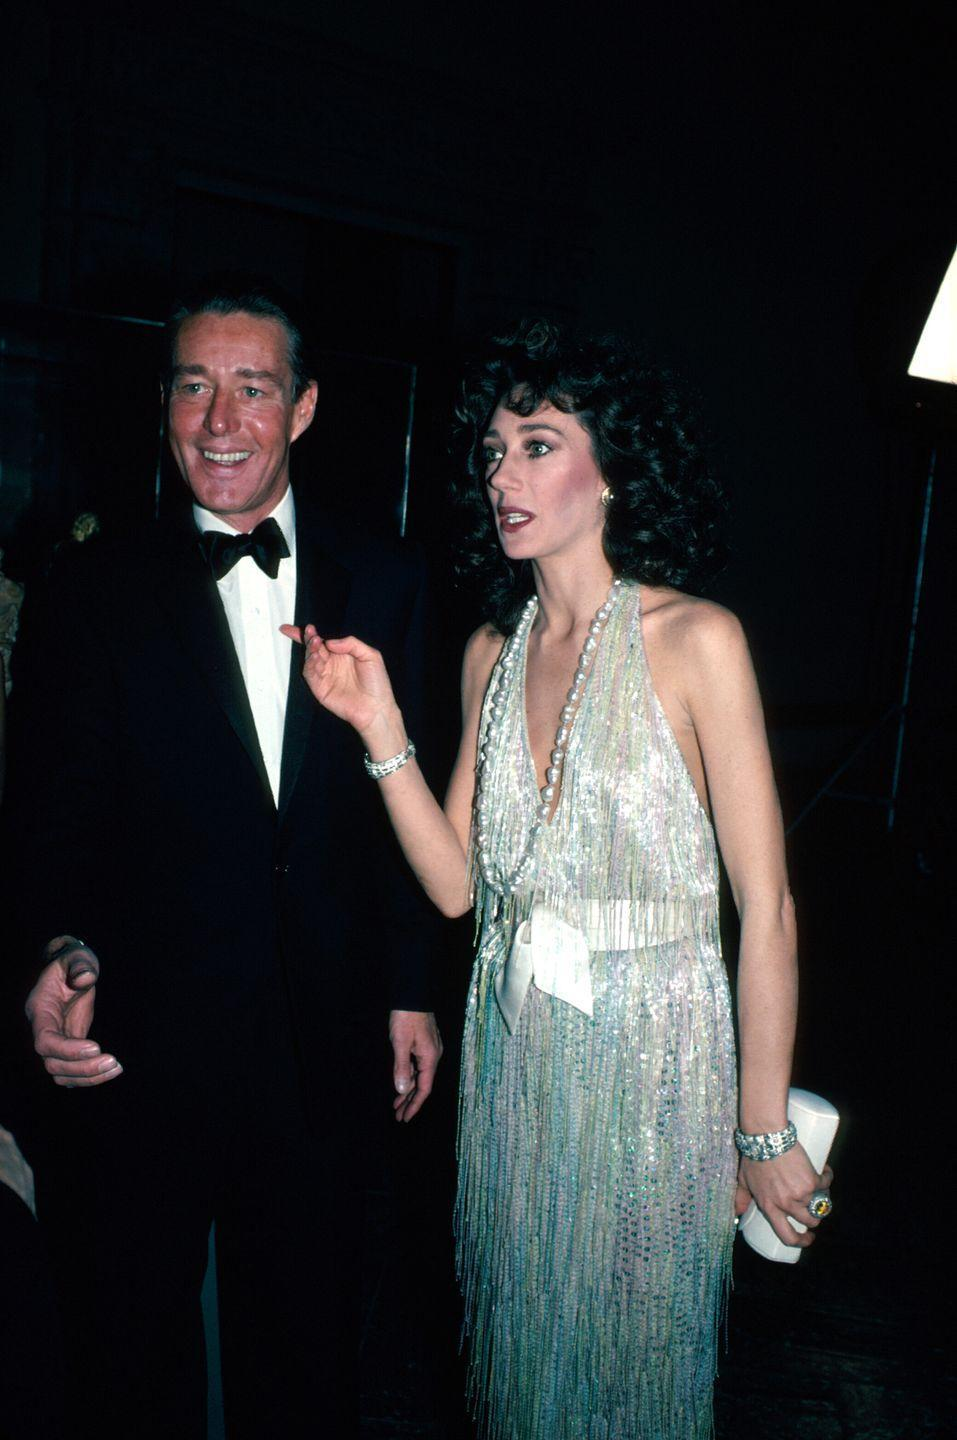 <p>Here, Halston is pictured at an event with famed actress Marisa Berenson.</p>